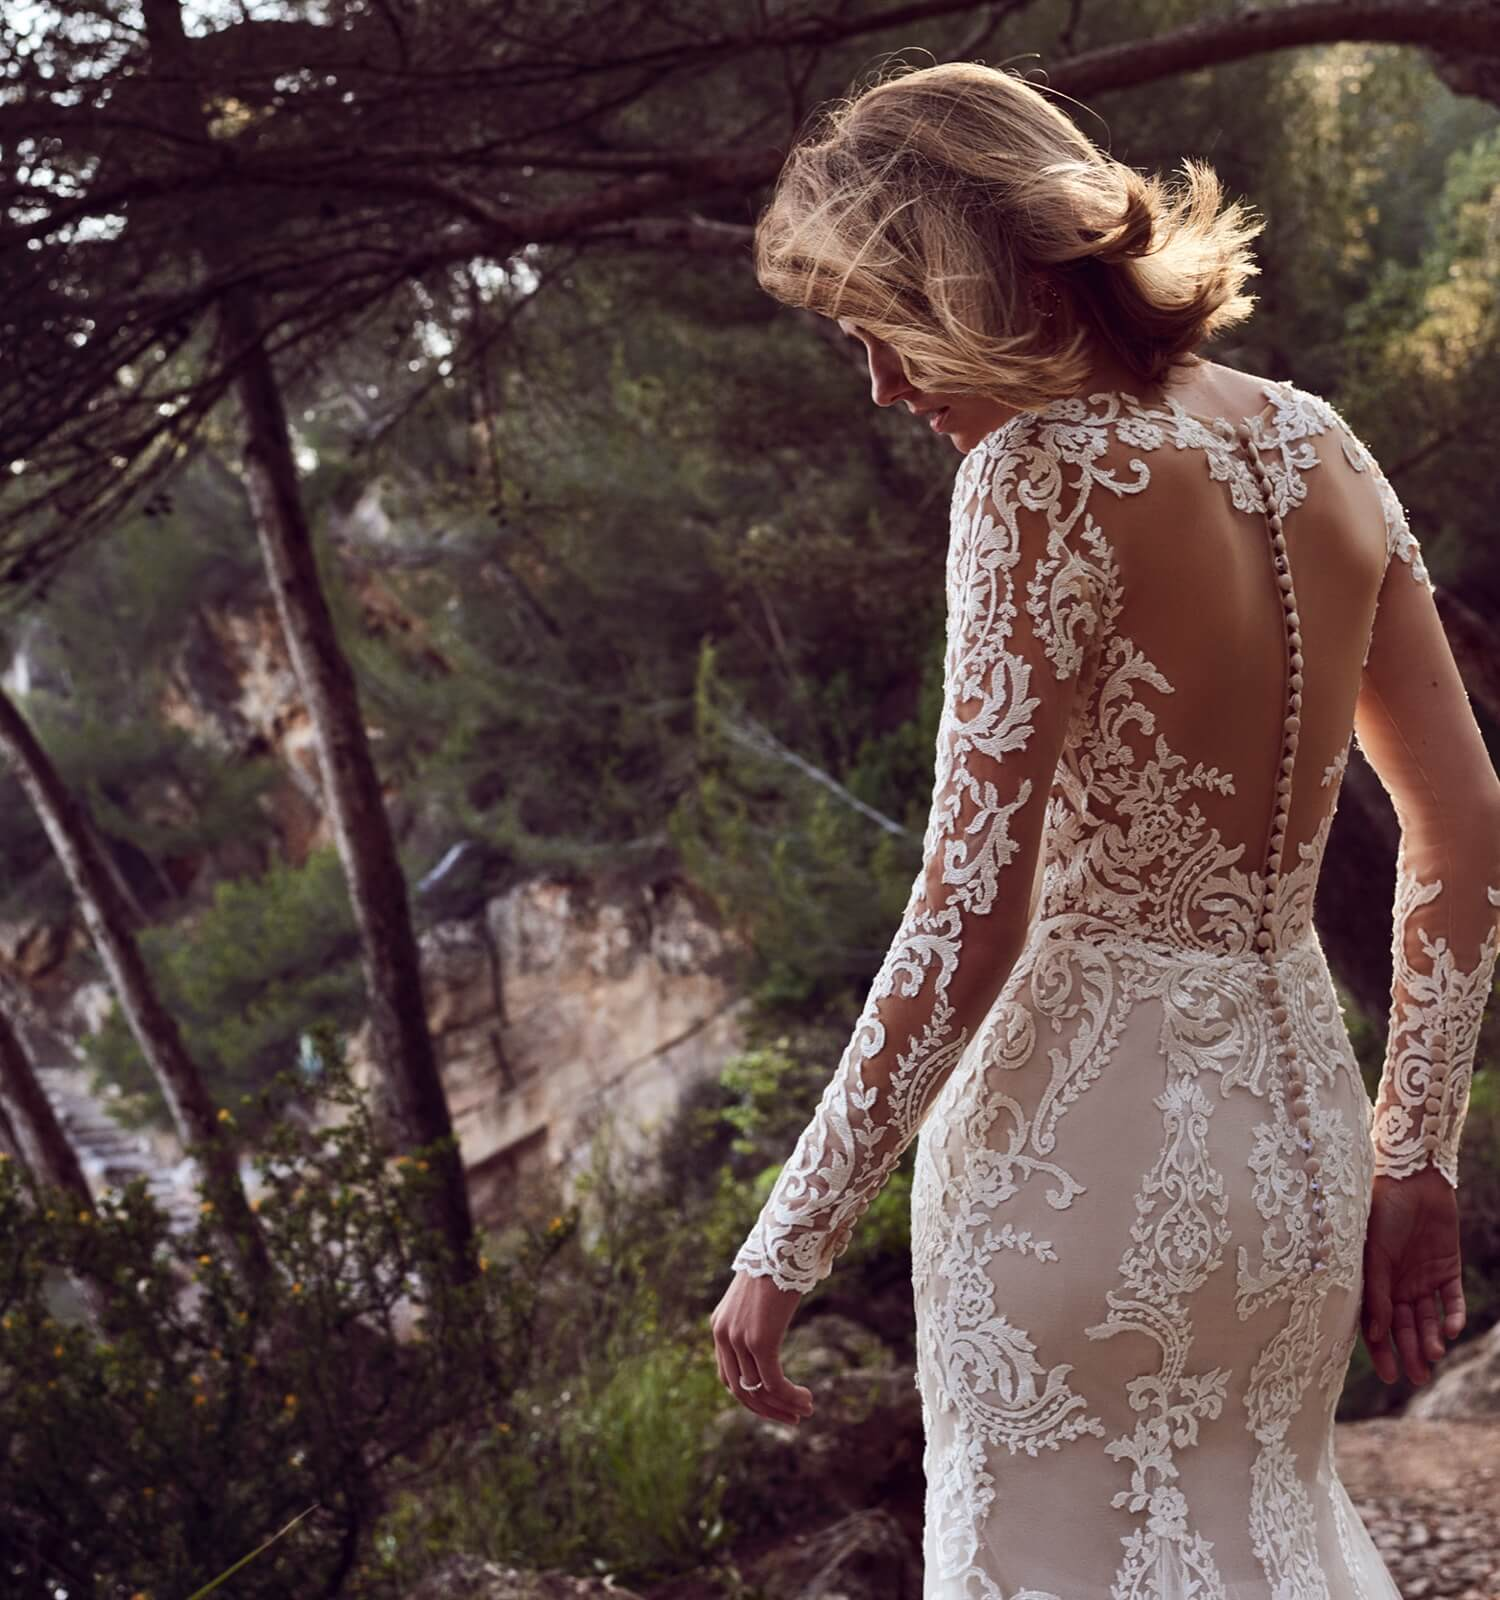 Model wearing lace long sleeve wedding dress shown on mobile device